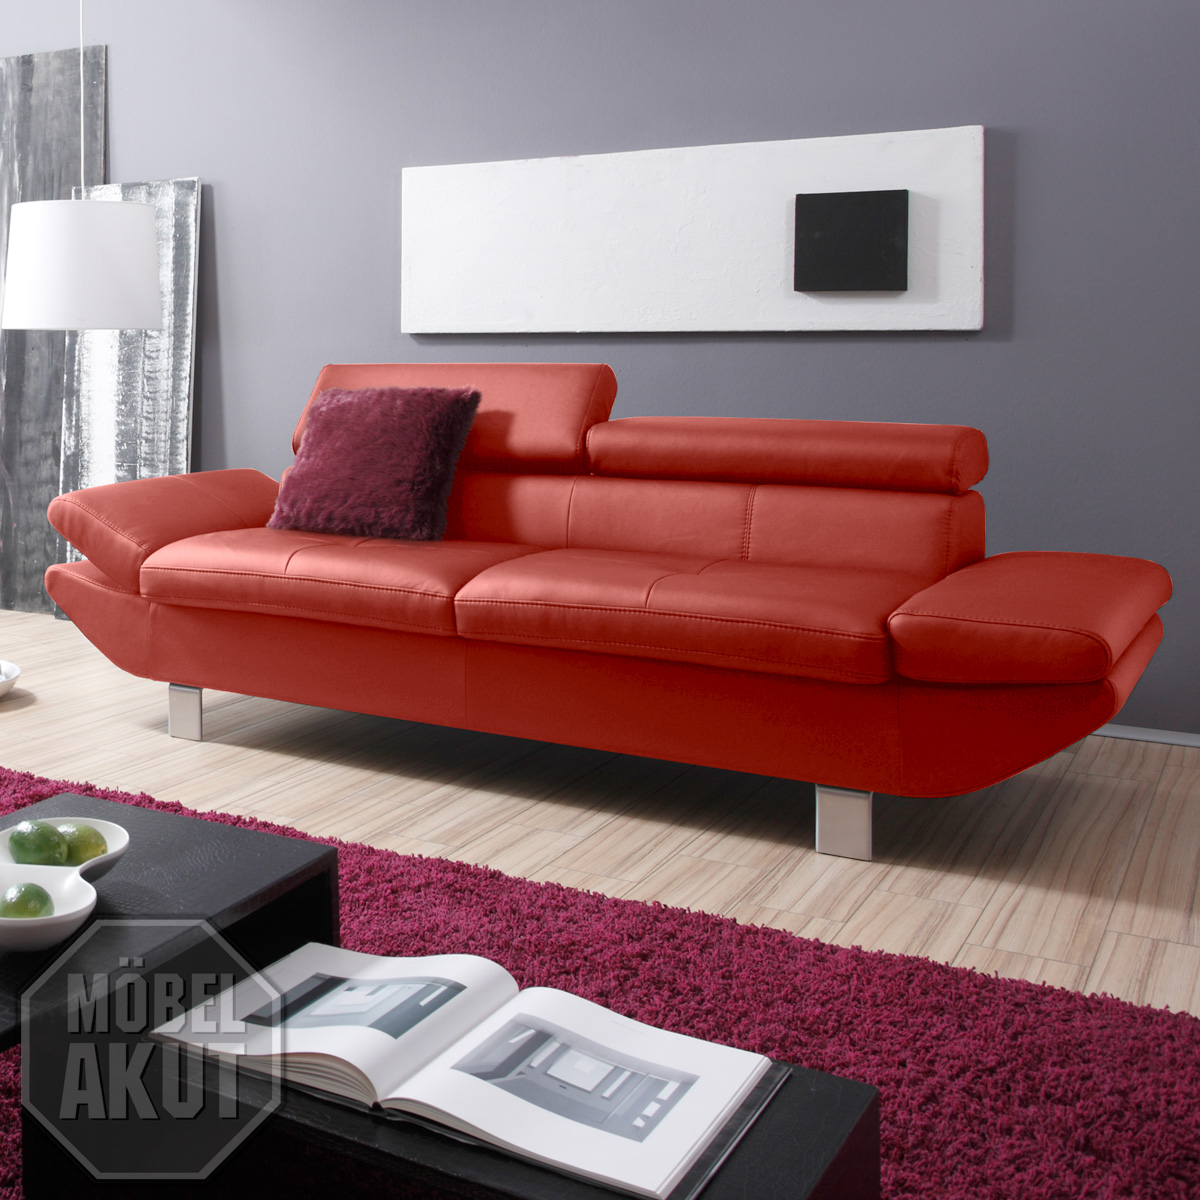 ecksofa testsieger inspirierendes design f r wohnm bel. Black Bedroom Furniture Sets. Home Design Ideas